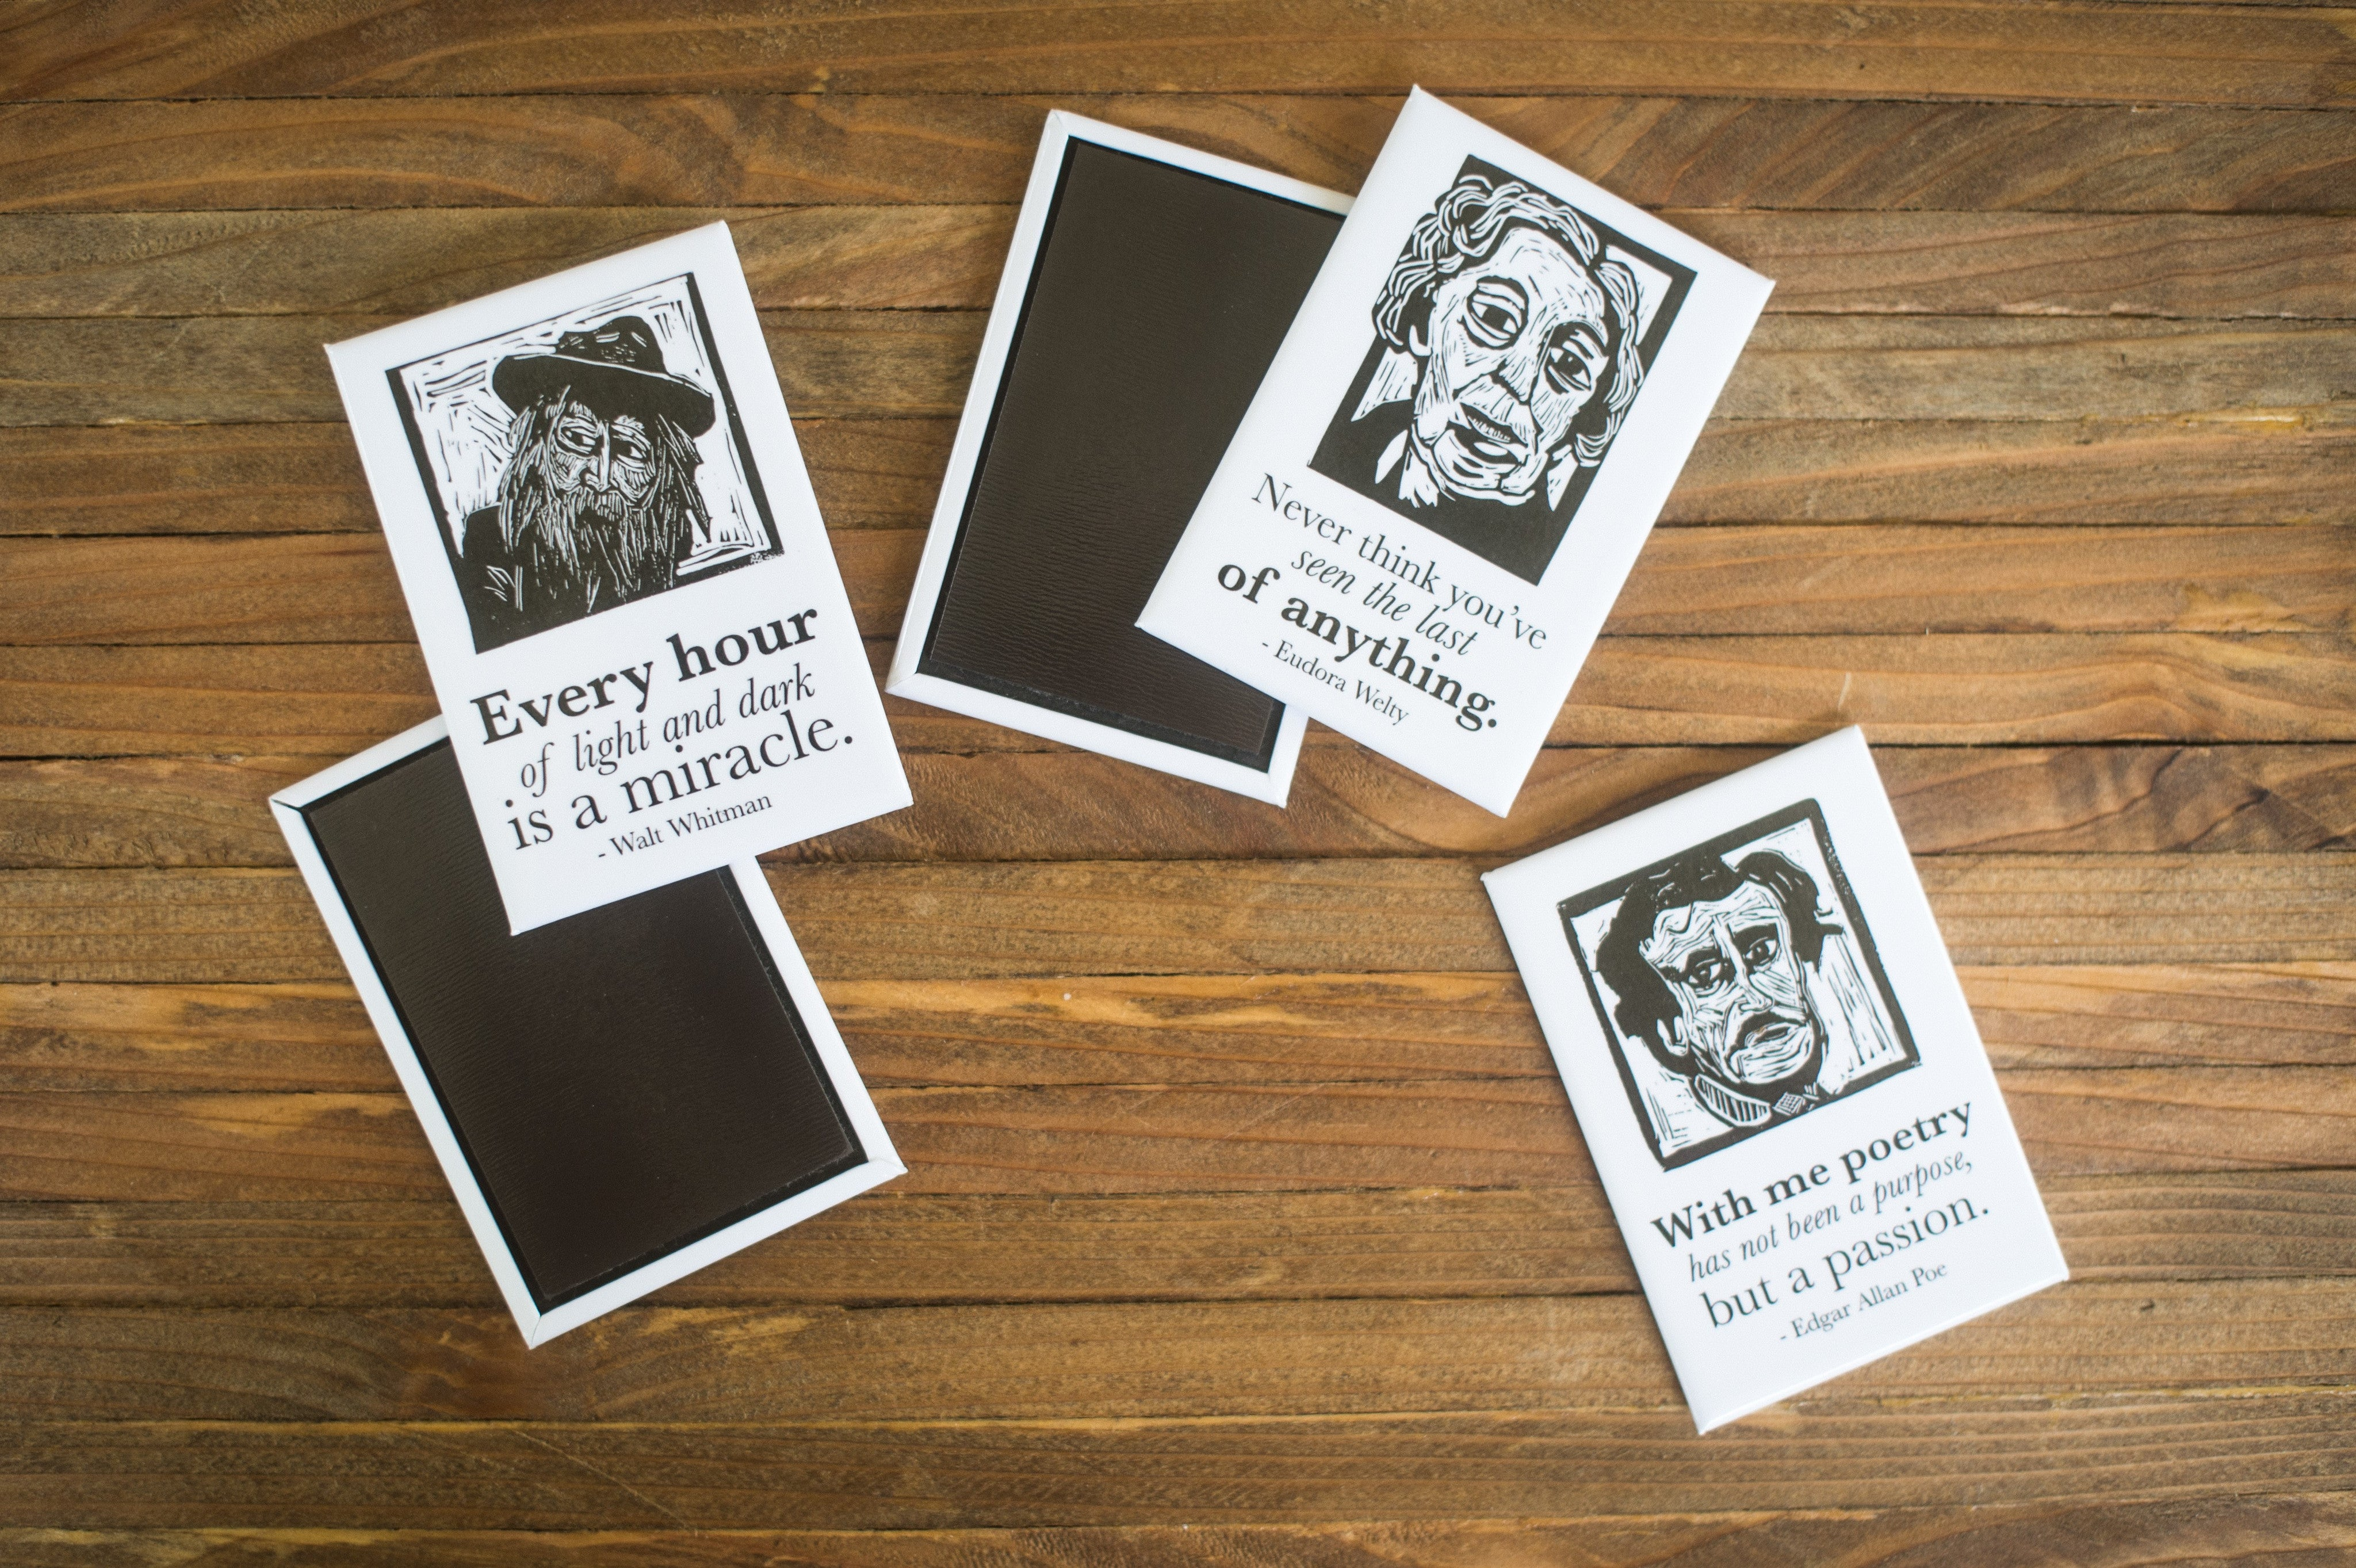 Mark Twain, Whitman, Welty, Capote, and Edgar Allen Poe Magnet set with quotes literary gift by Eastgrove Studio